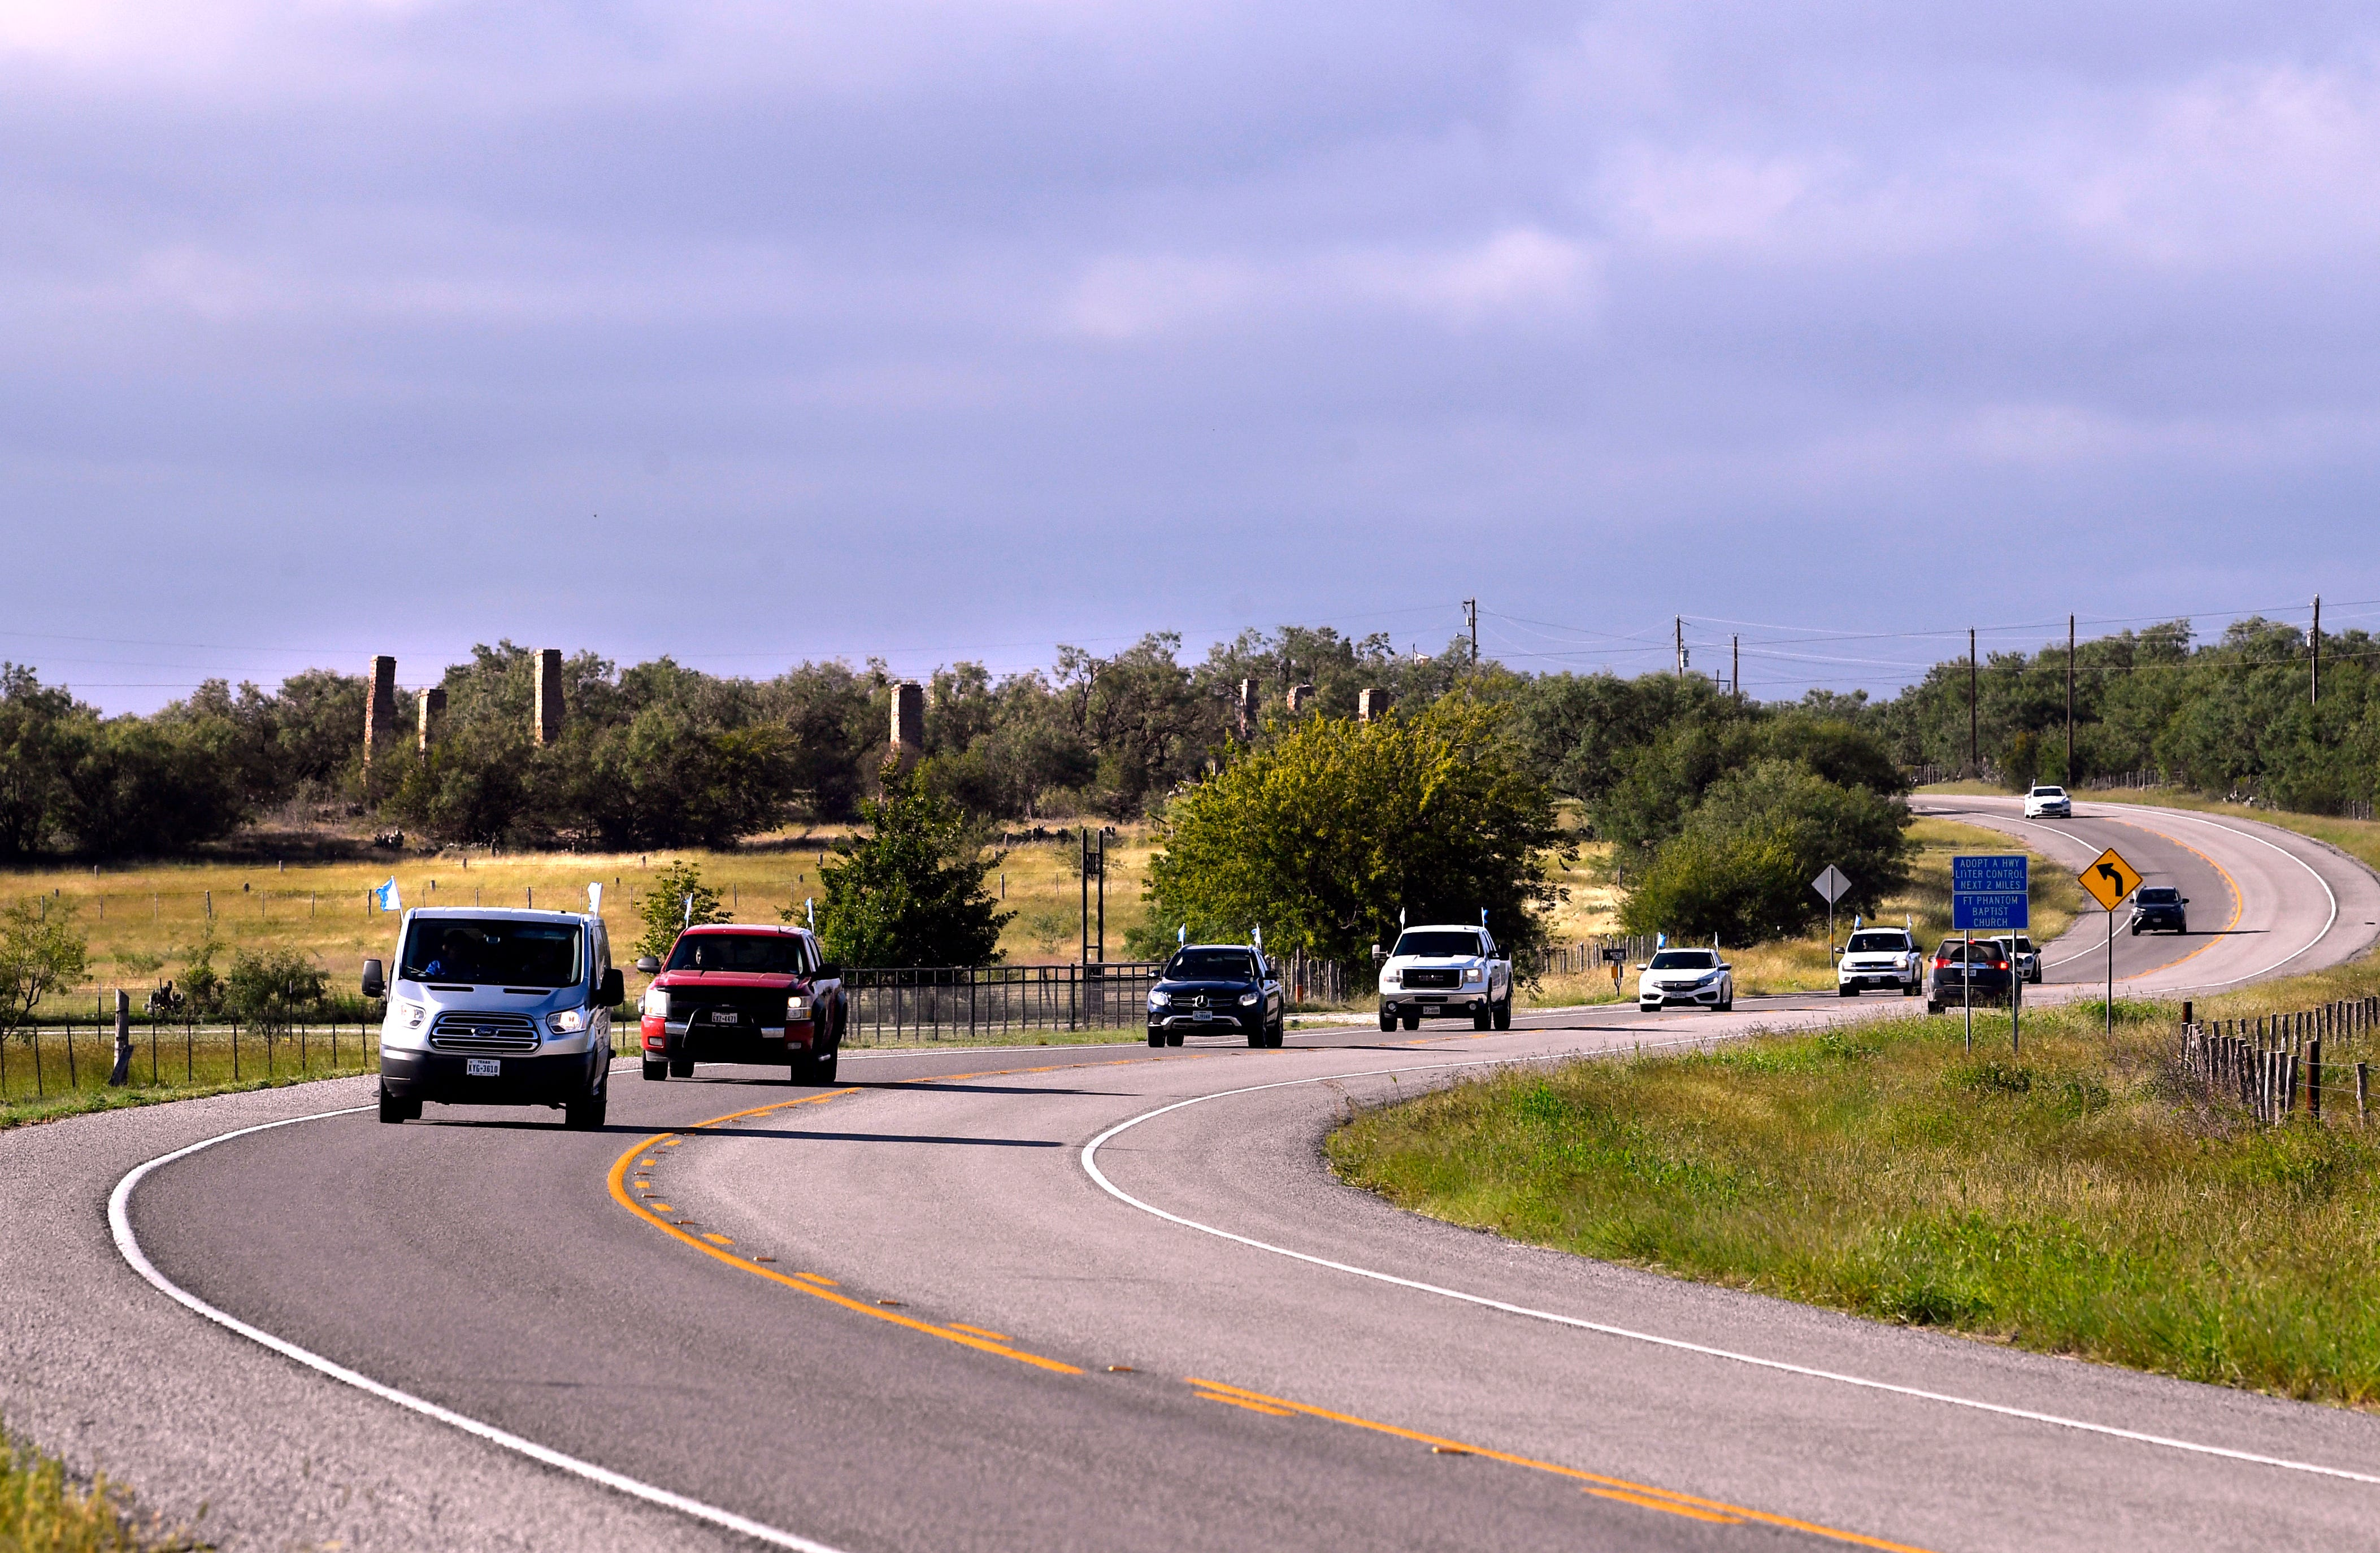 With Fort Phantom Hill in the background, a caravan of vehicles drives along FM 600 Thursday Oct. 4, 2018 to their next destination, Fort Belknap. A group is recreating the 1968 650-mile journey that was undertaken by Gov. John Connally to inaugurate the Texas trails program and boost tourism.